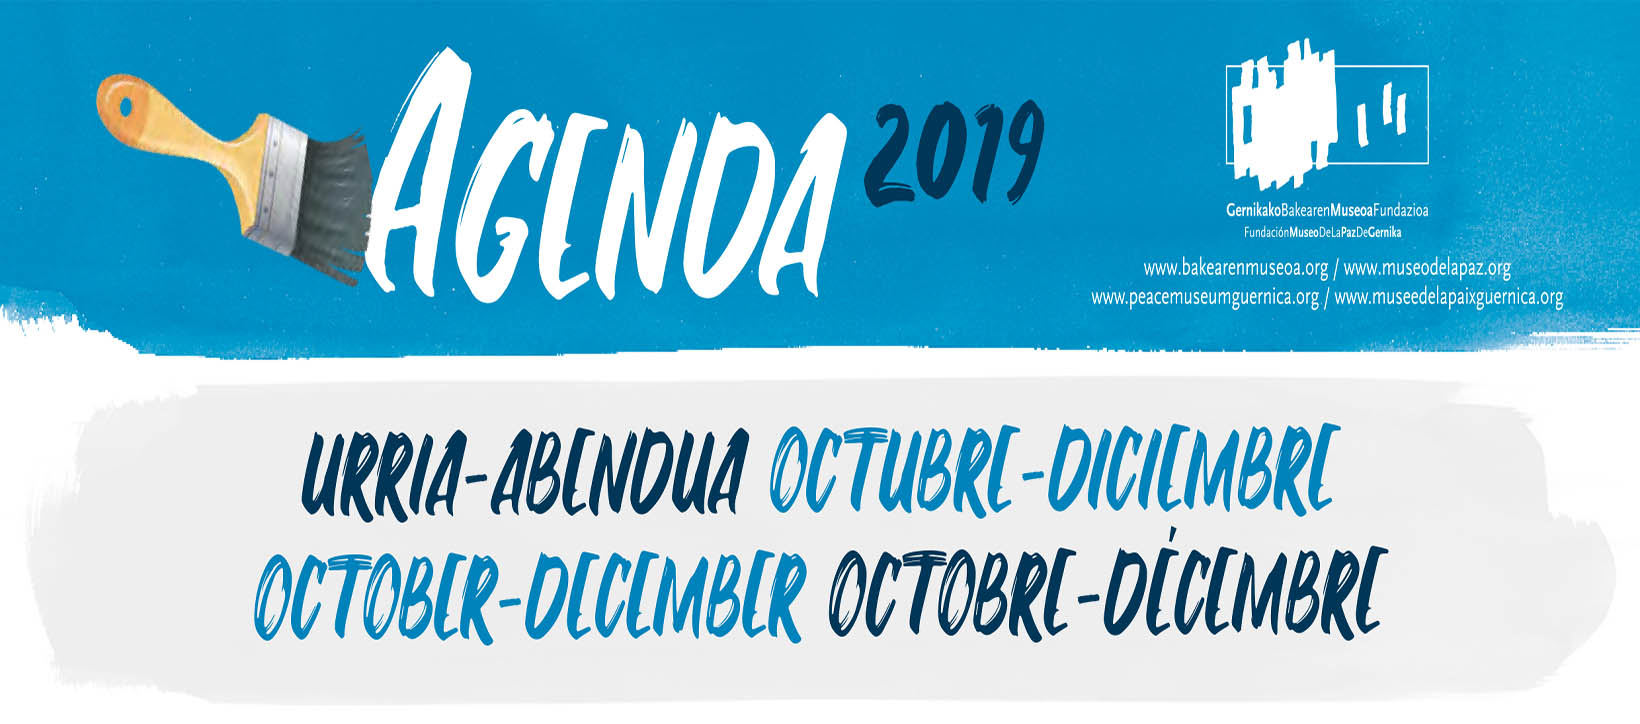 Agenda 2019, 4<sup>to</sup> trimestre